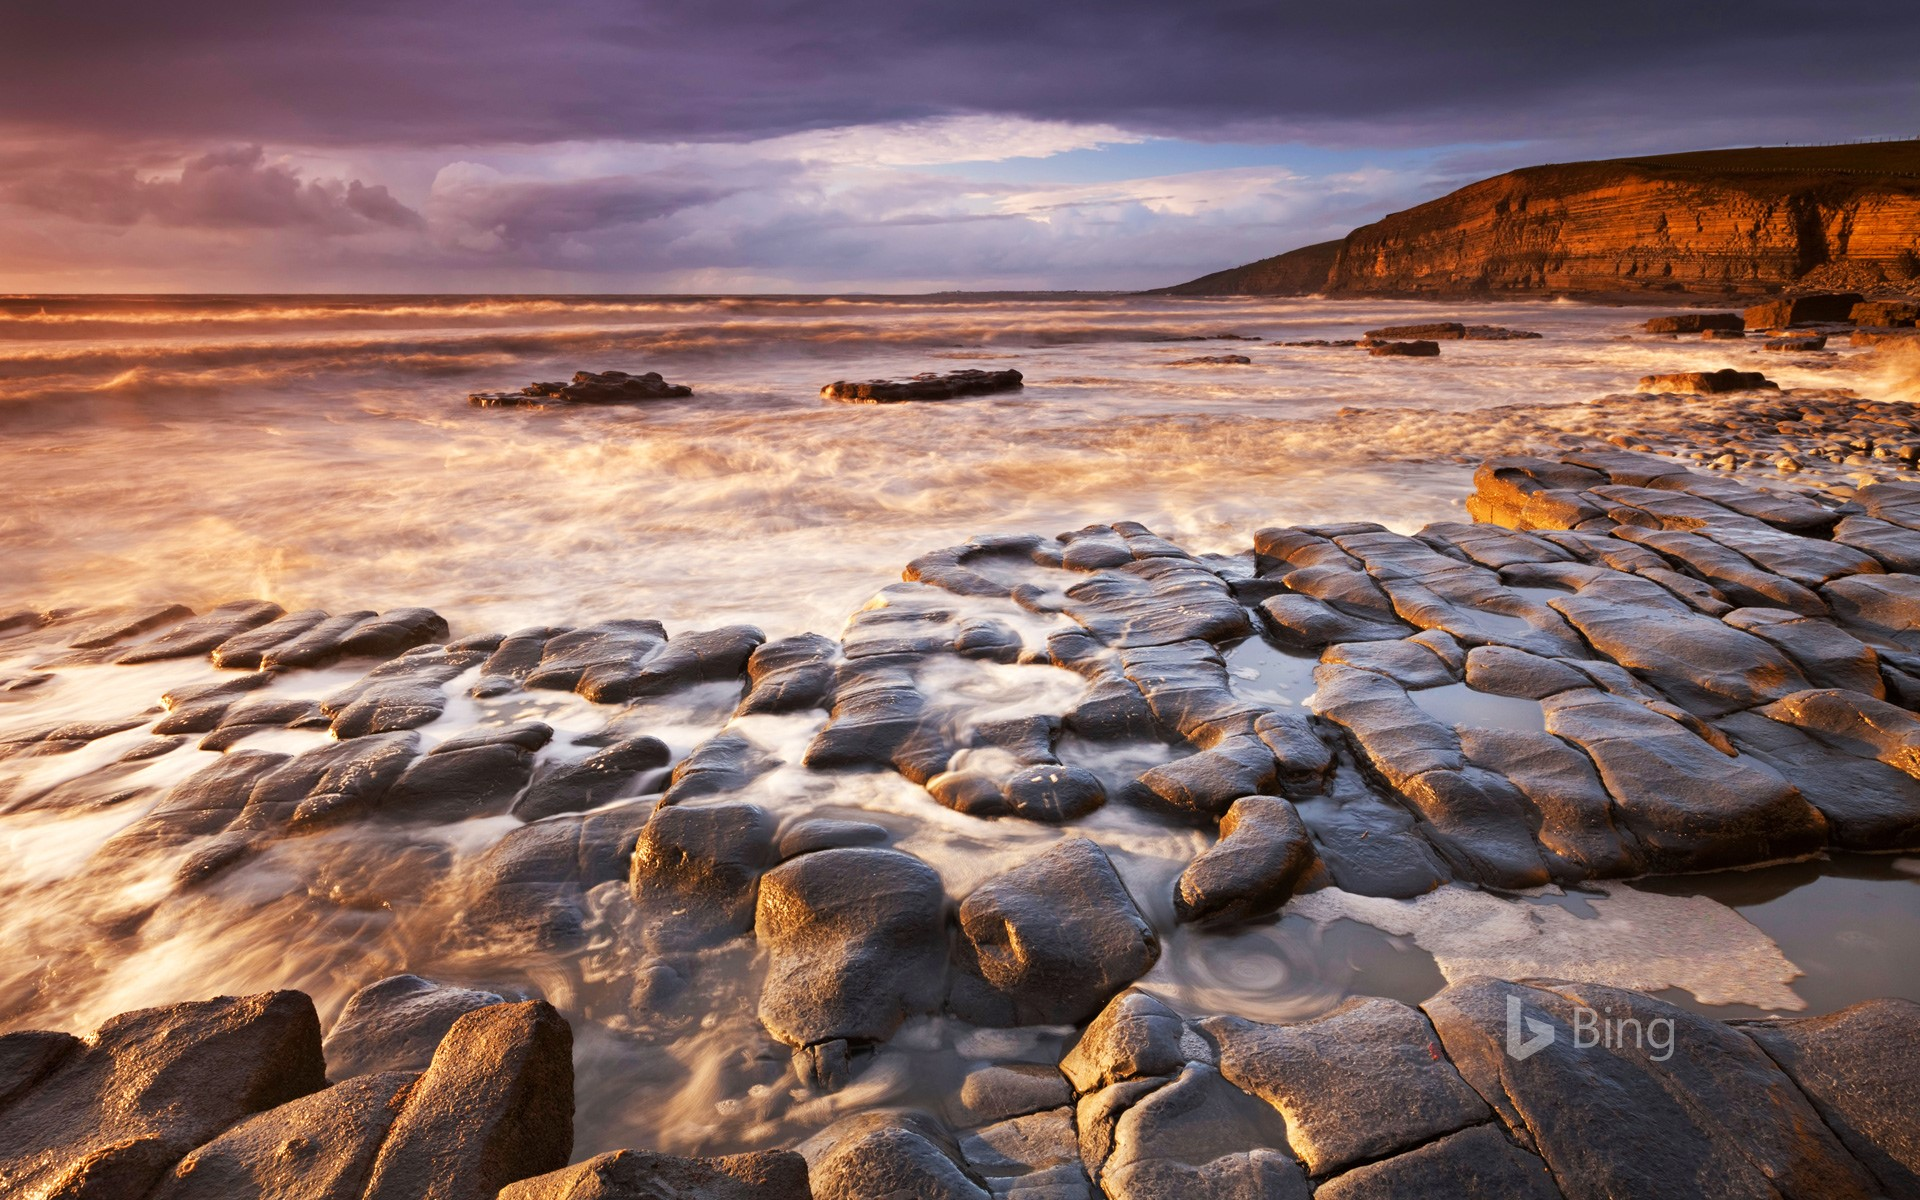 Dunraven Bay on the Glamorgan Heritage Coast, South Wales